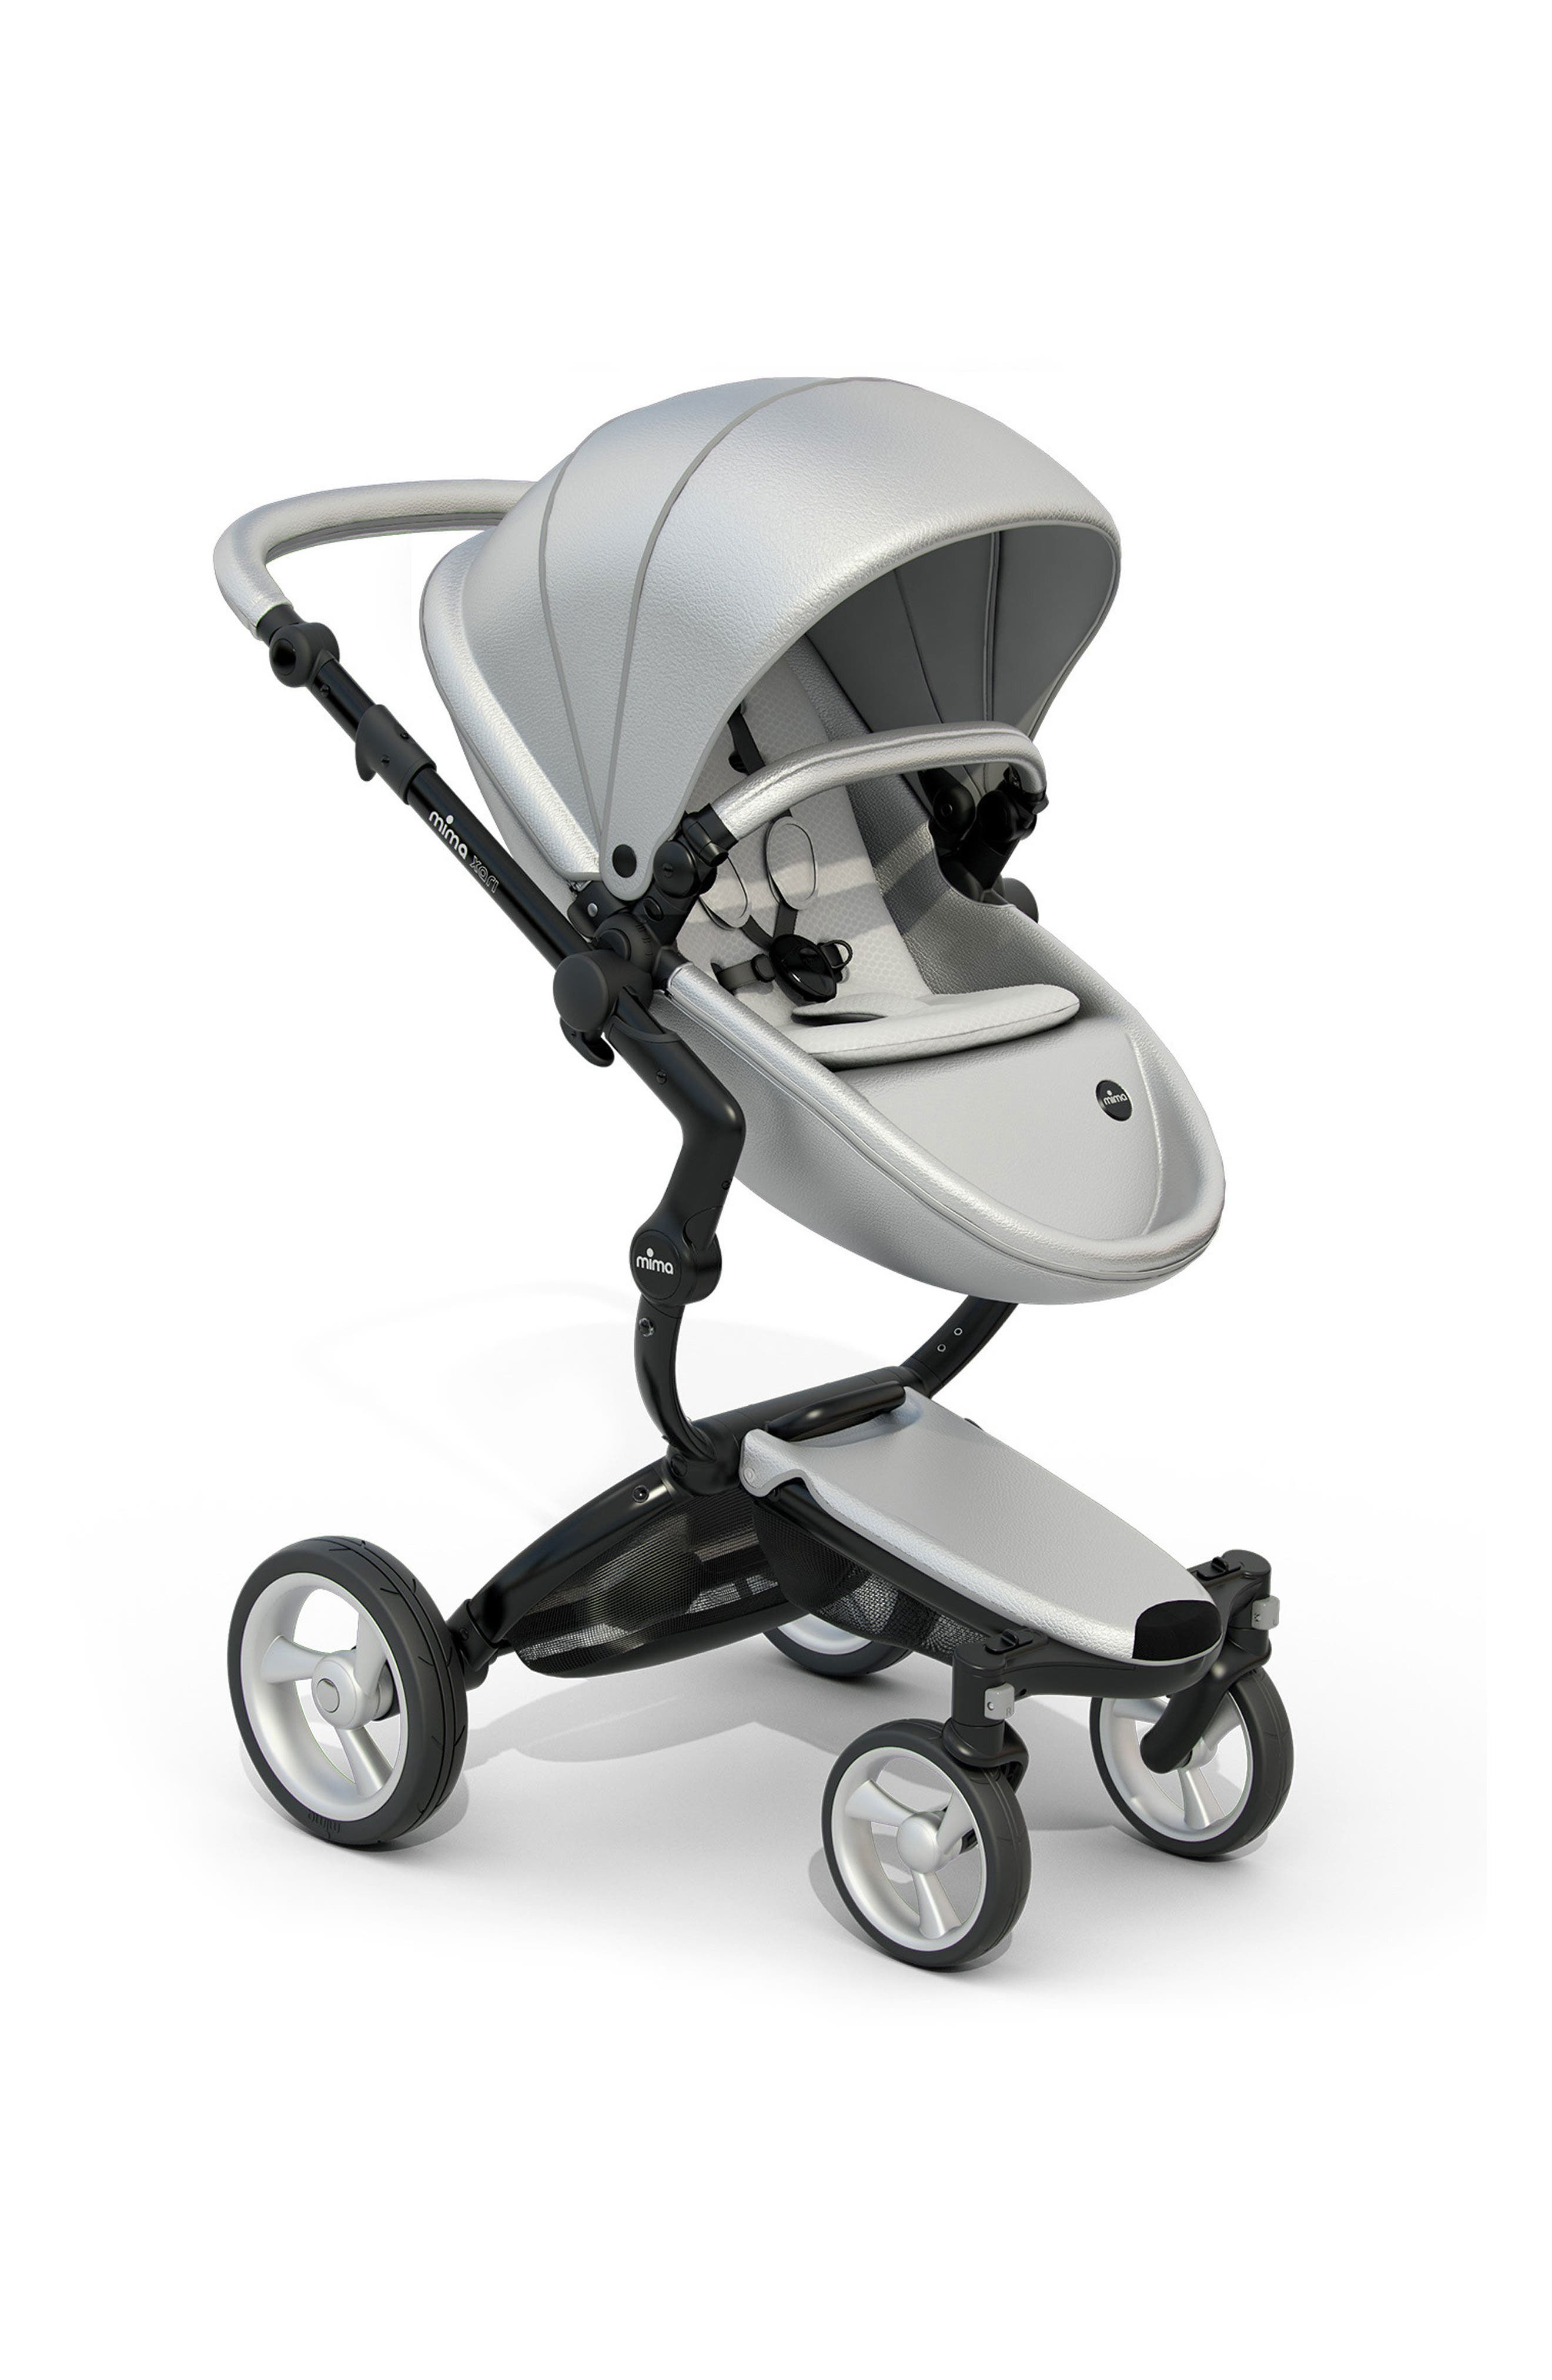 Main Image - Mima Xari Black Chassis Stroller with Reversible Reclining Seat & Carrycot